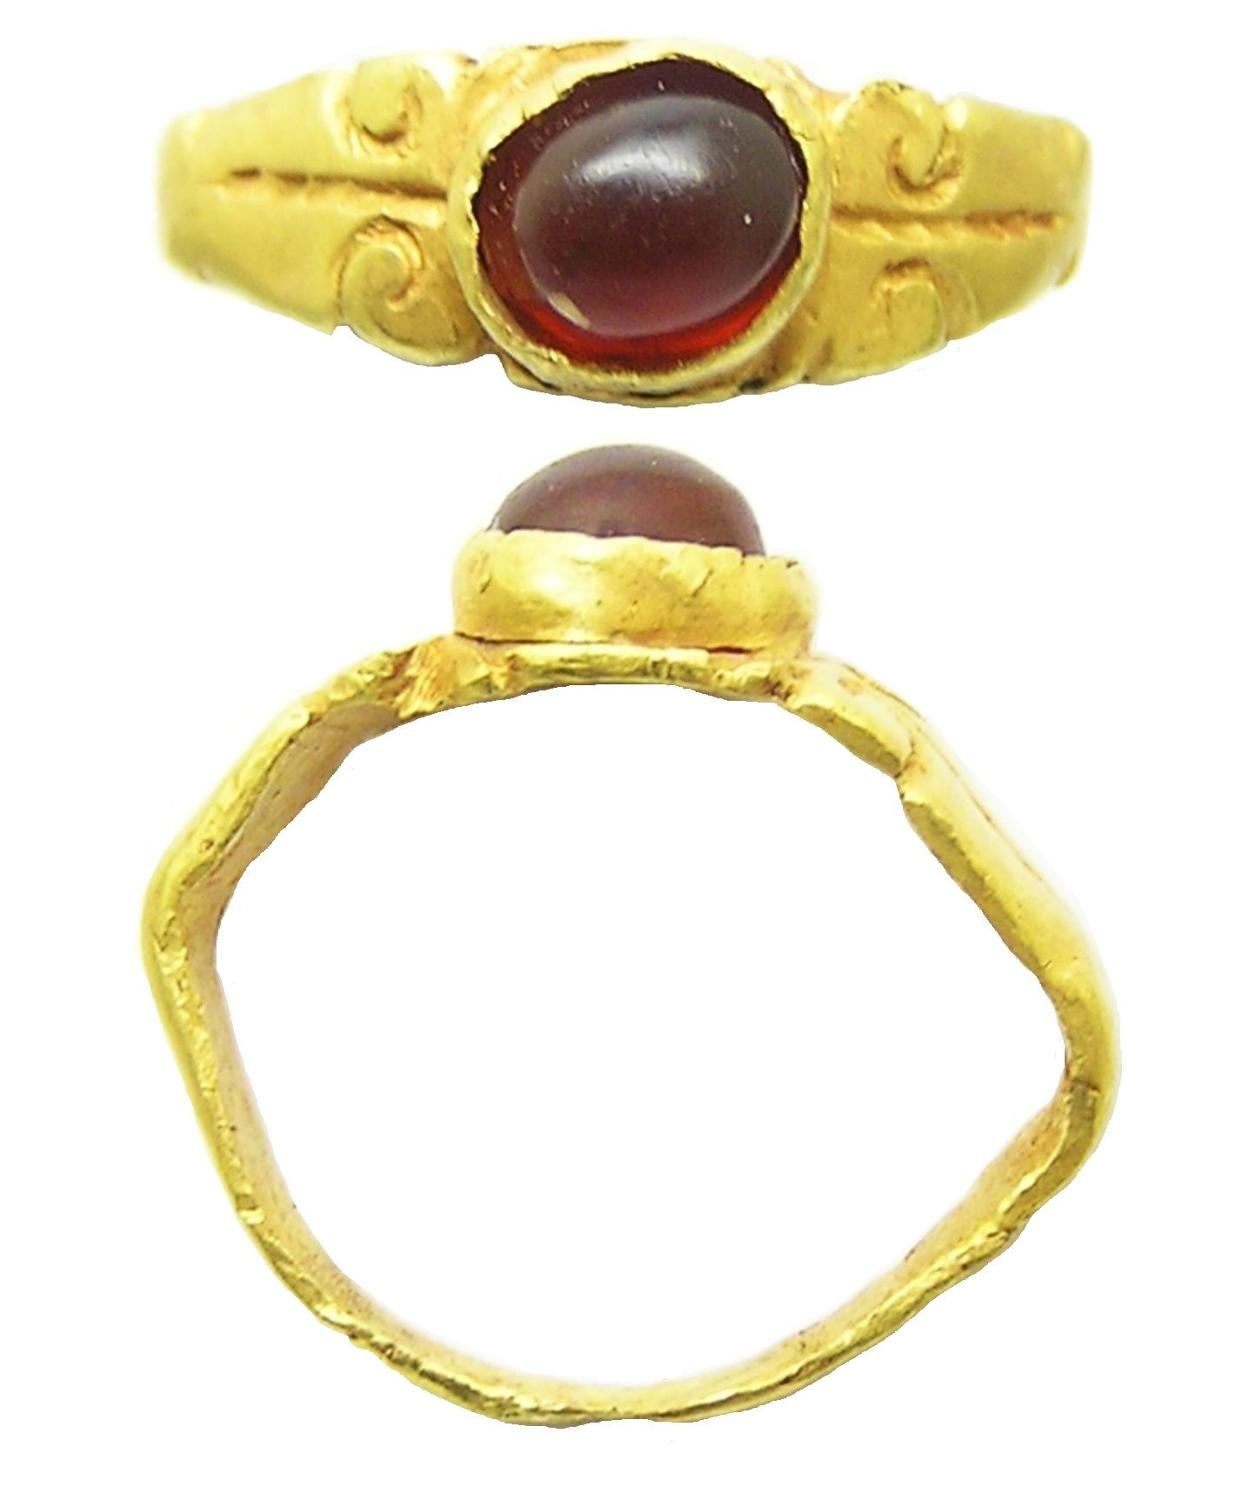 Ancient Roman gold finger ring keeled type garnet gem